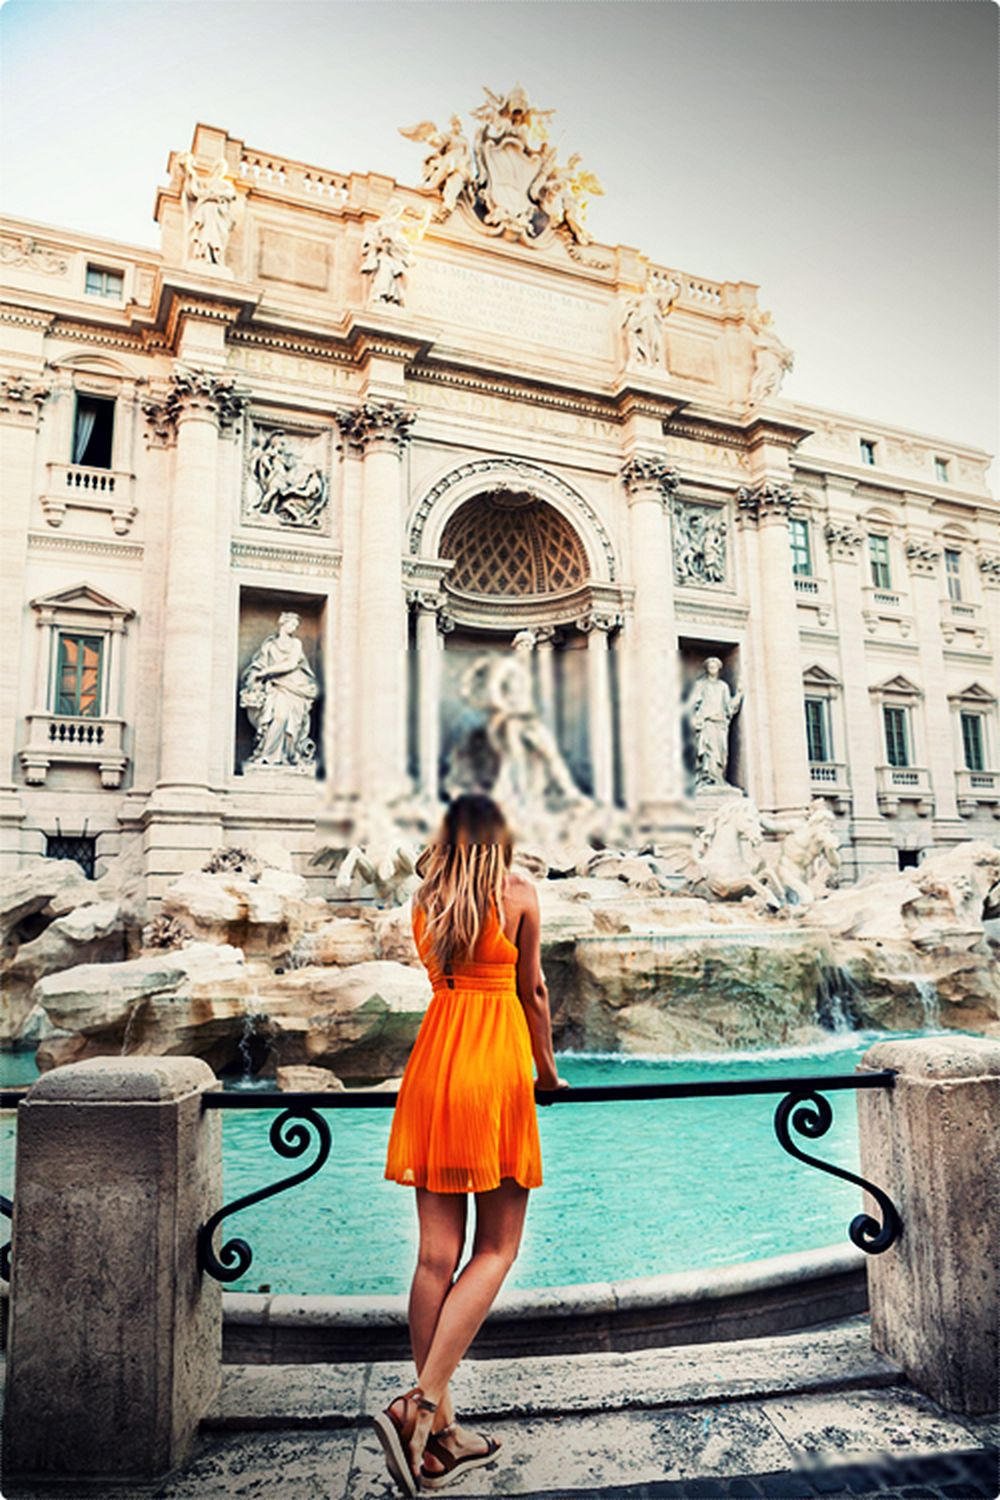 The Trevi Fountain is where you can also toss a coin for good luck.